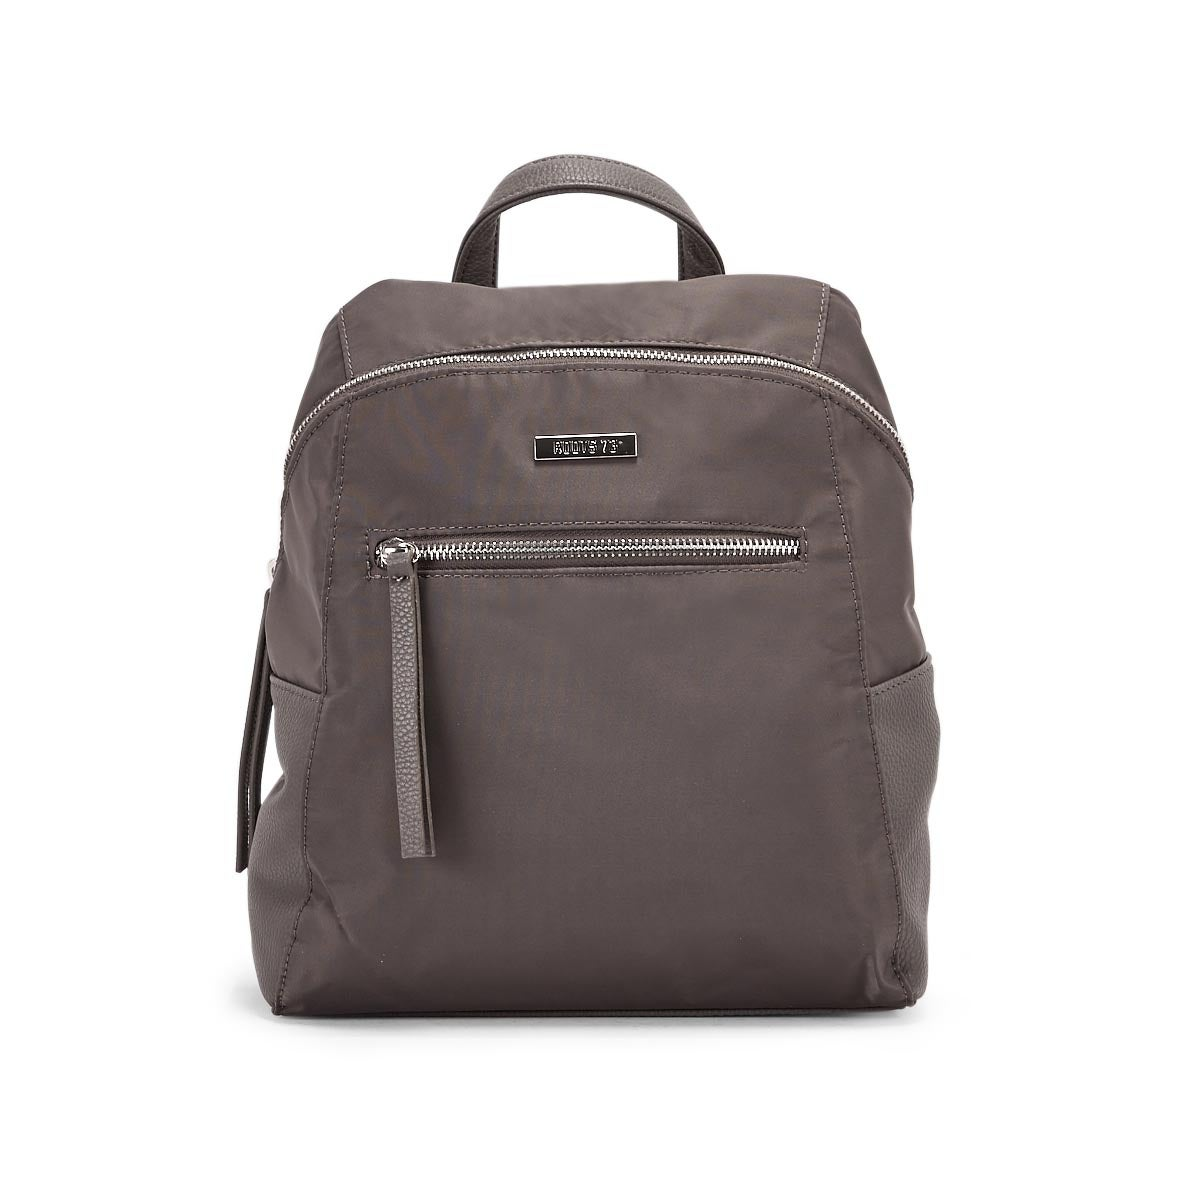 Lds Roots73 taupe mini backpack